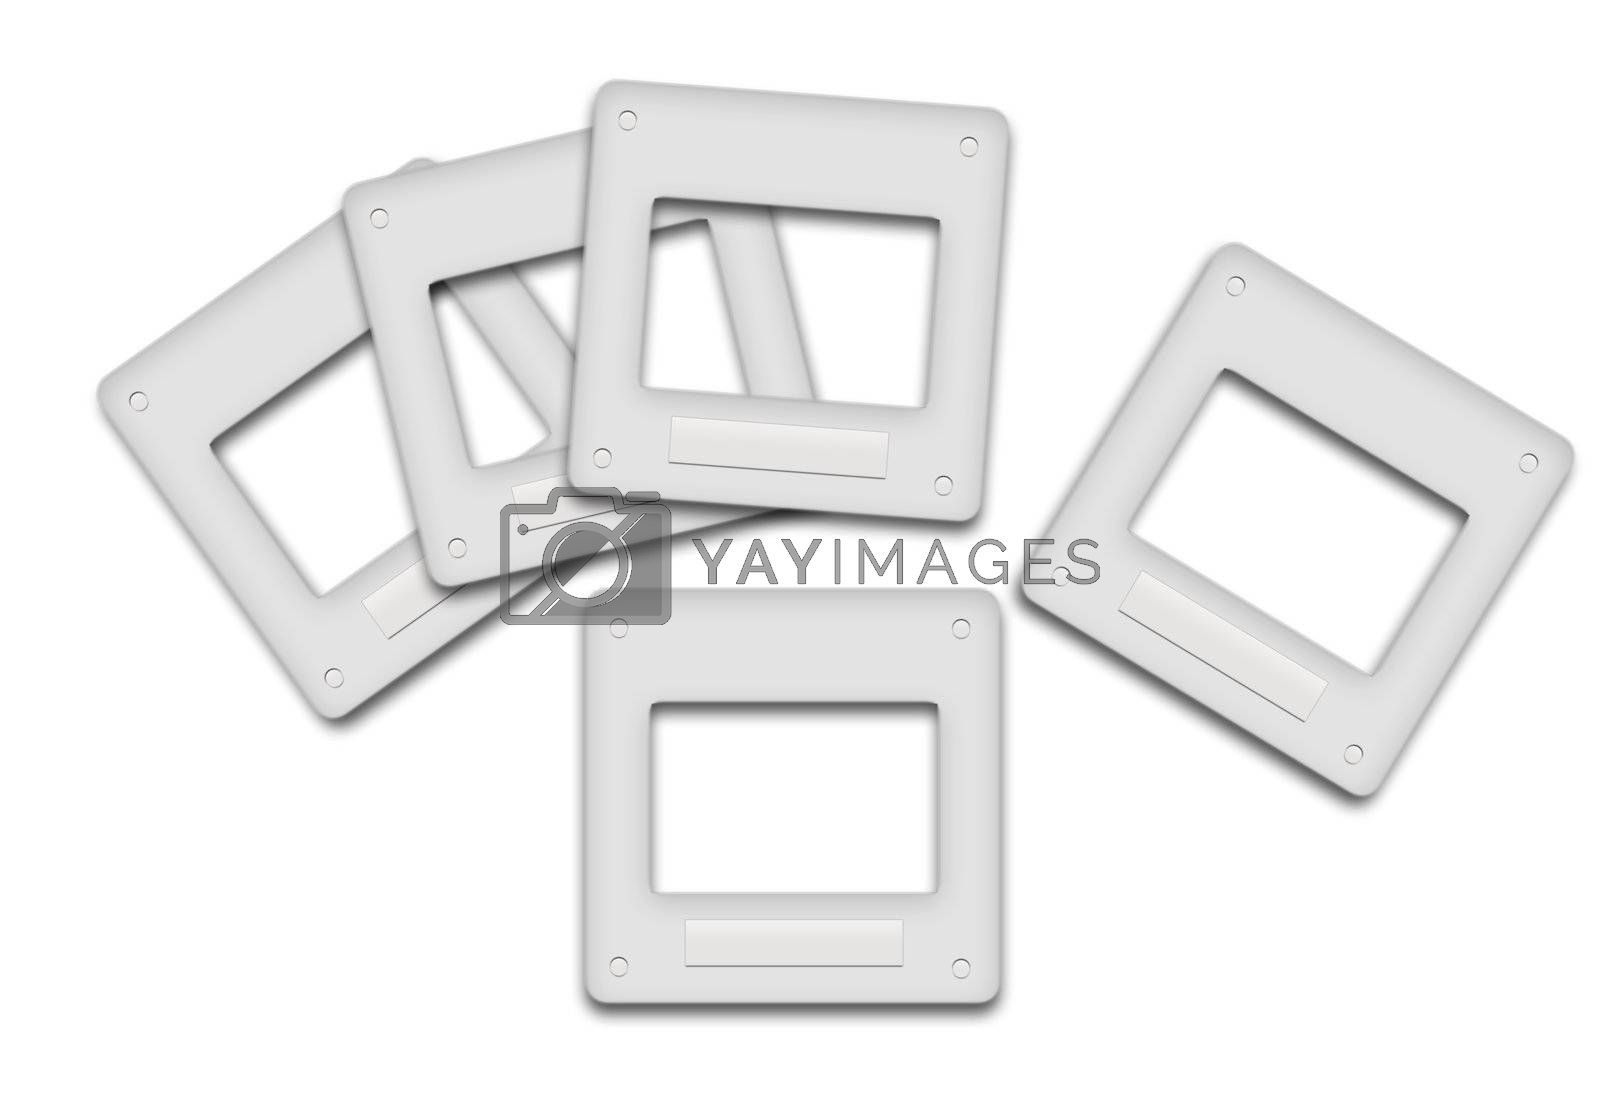 five slides that were placed differently on a white background